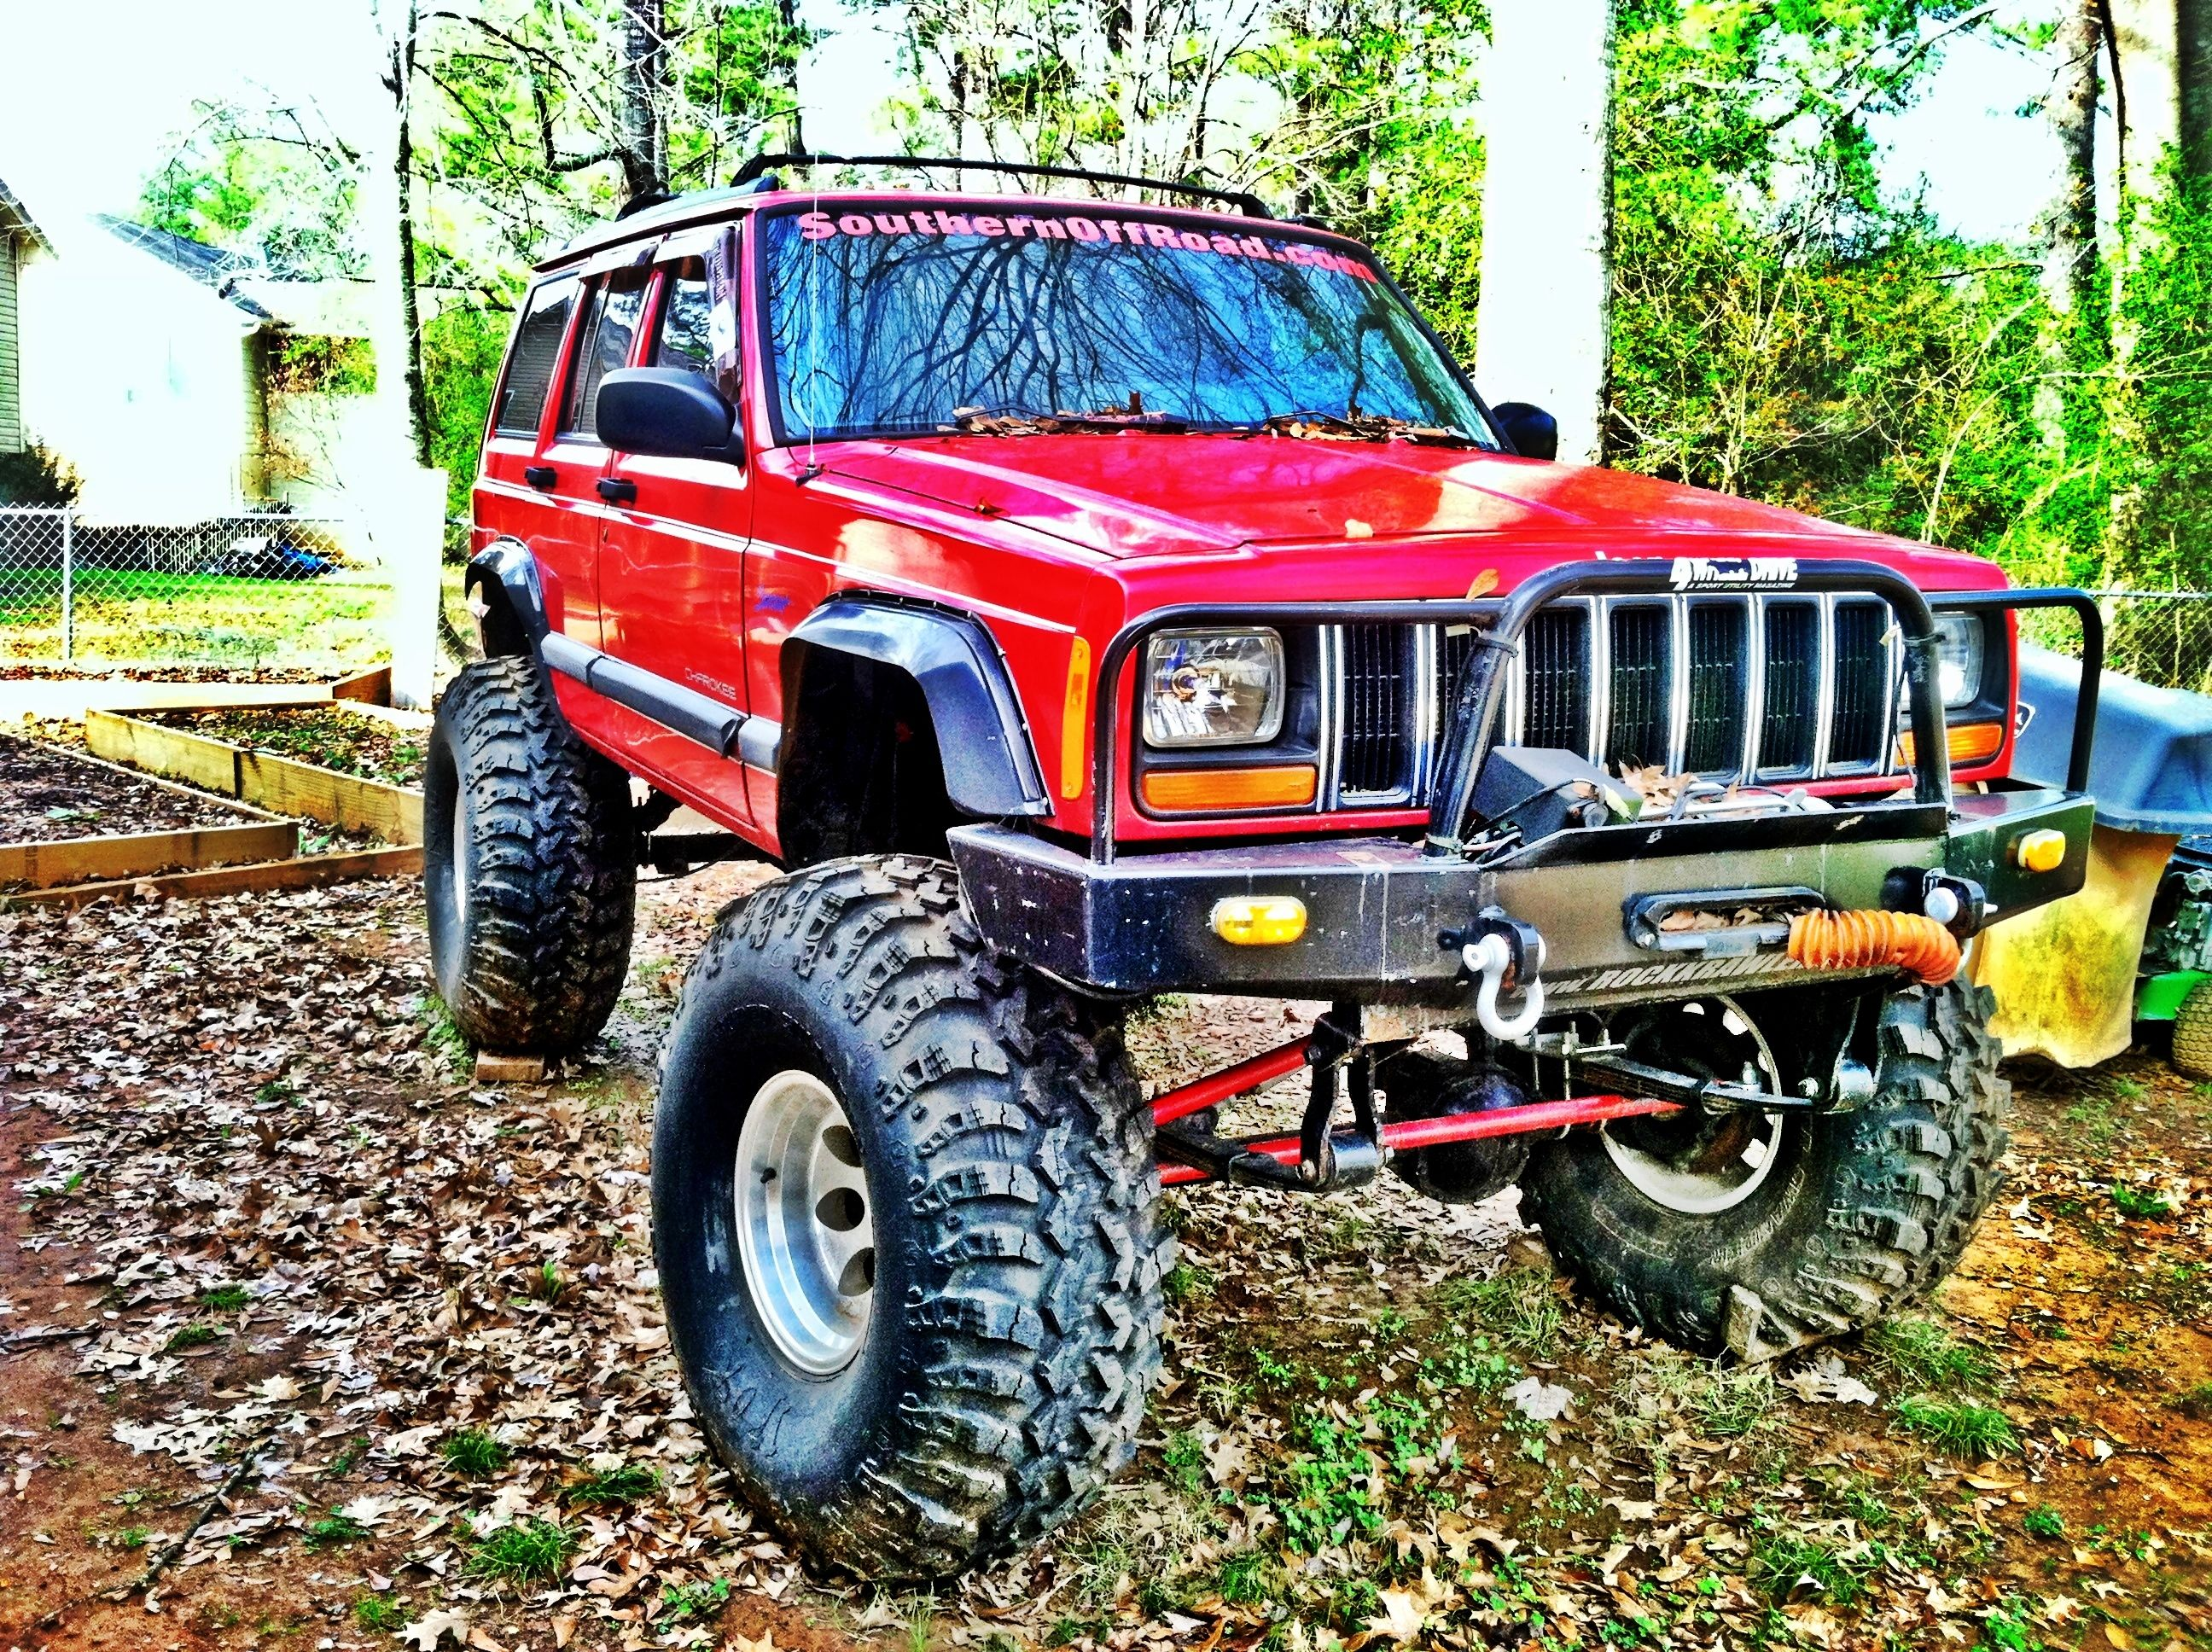 Big Red Jeep Cherokee Jeep Cherokee Red Jeep Jeep